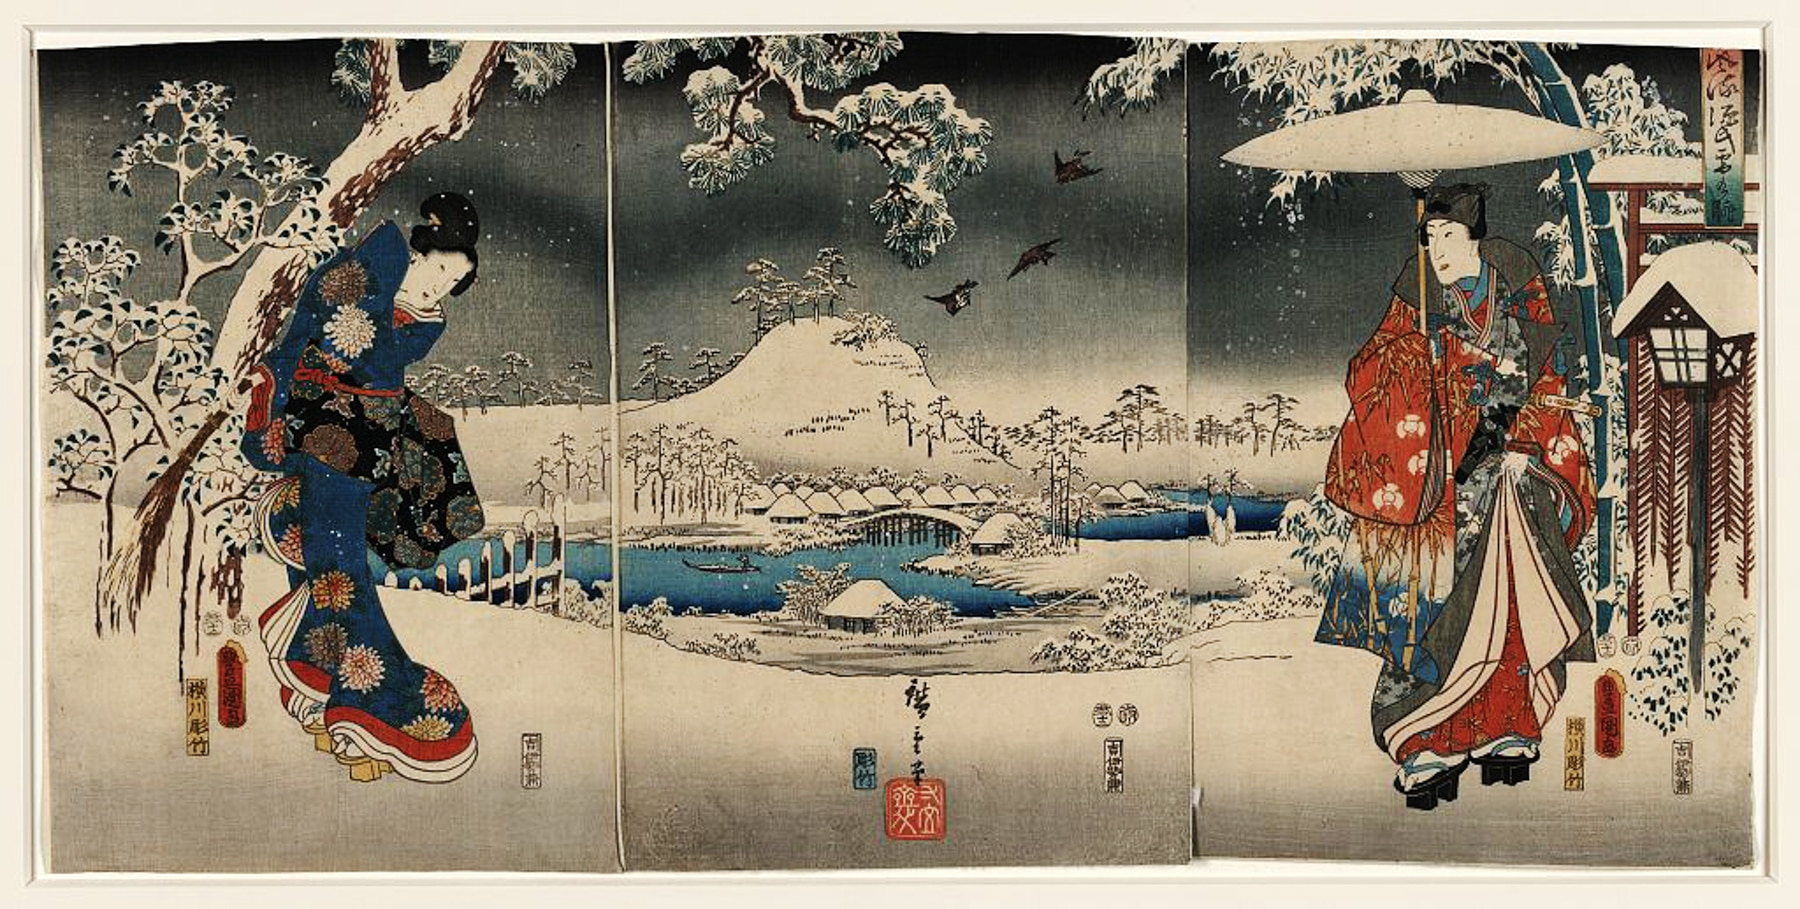 Drawing of two Japanese people in winter scene (Library of Congress, https://www.loc.gov/item/2002700023)